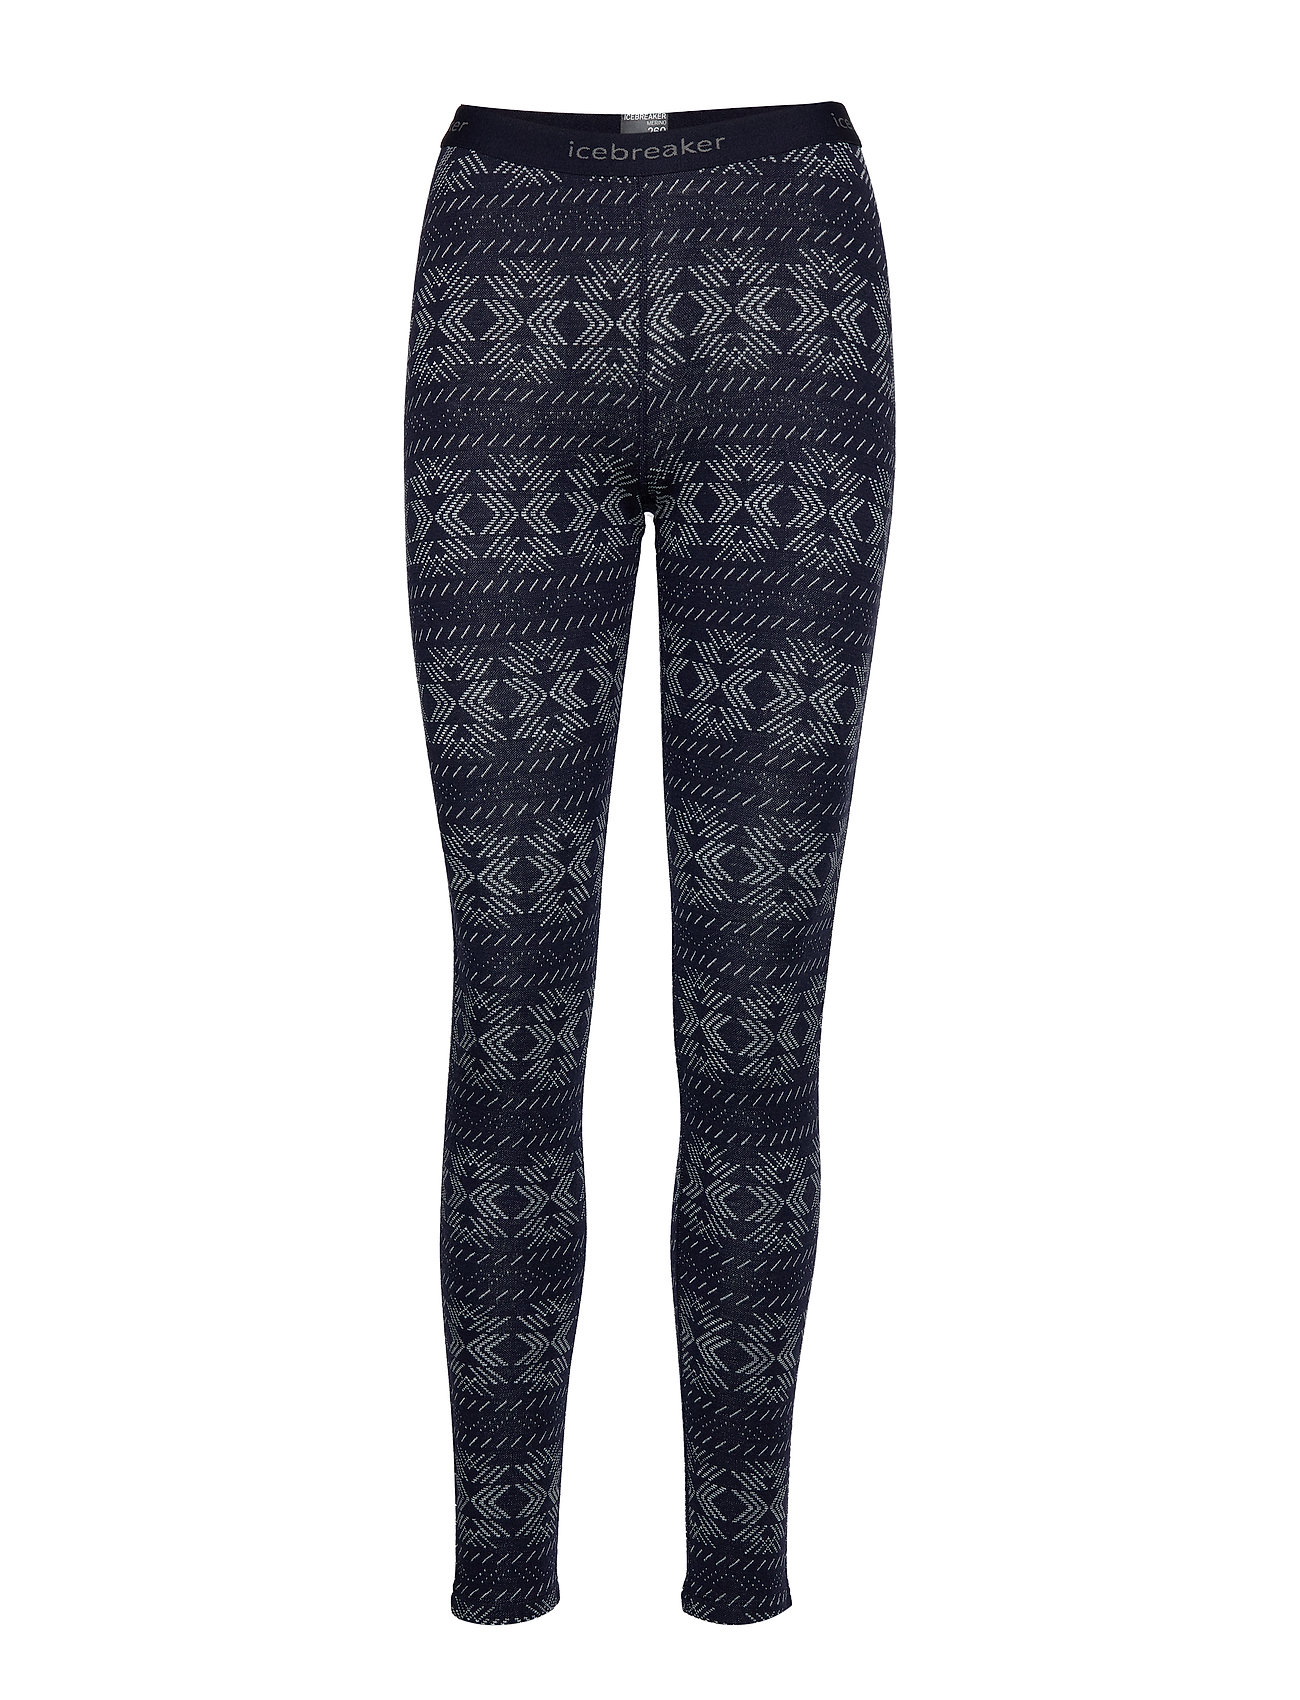 Icebreaker Wmns 250 Vertex Leggings Crystalline - MIDNIGHT NAVY